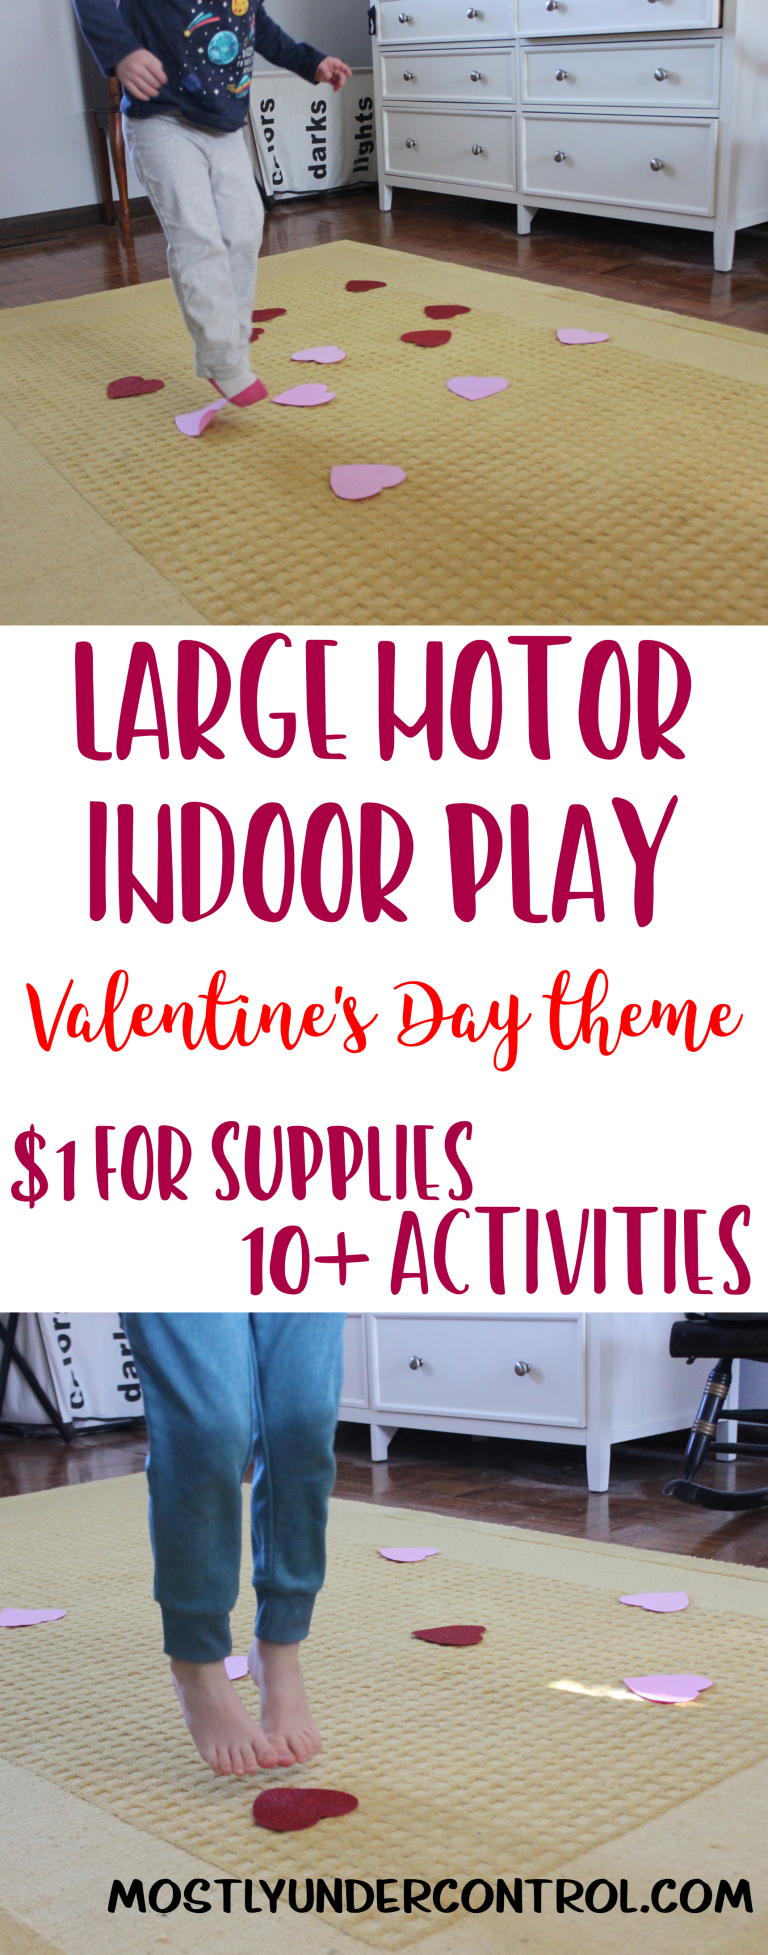 Large motor indoor play Valentine's Day theme. $1 for supplies and 10+ activities! Photo of child in blue pants jumping on glittery red hearts on a yellow rug.